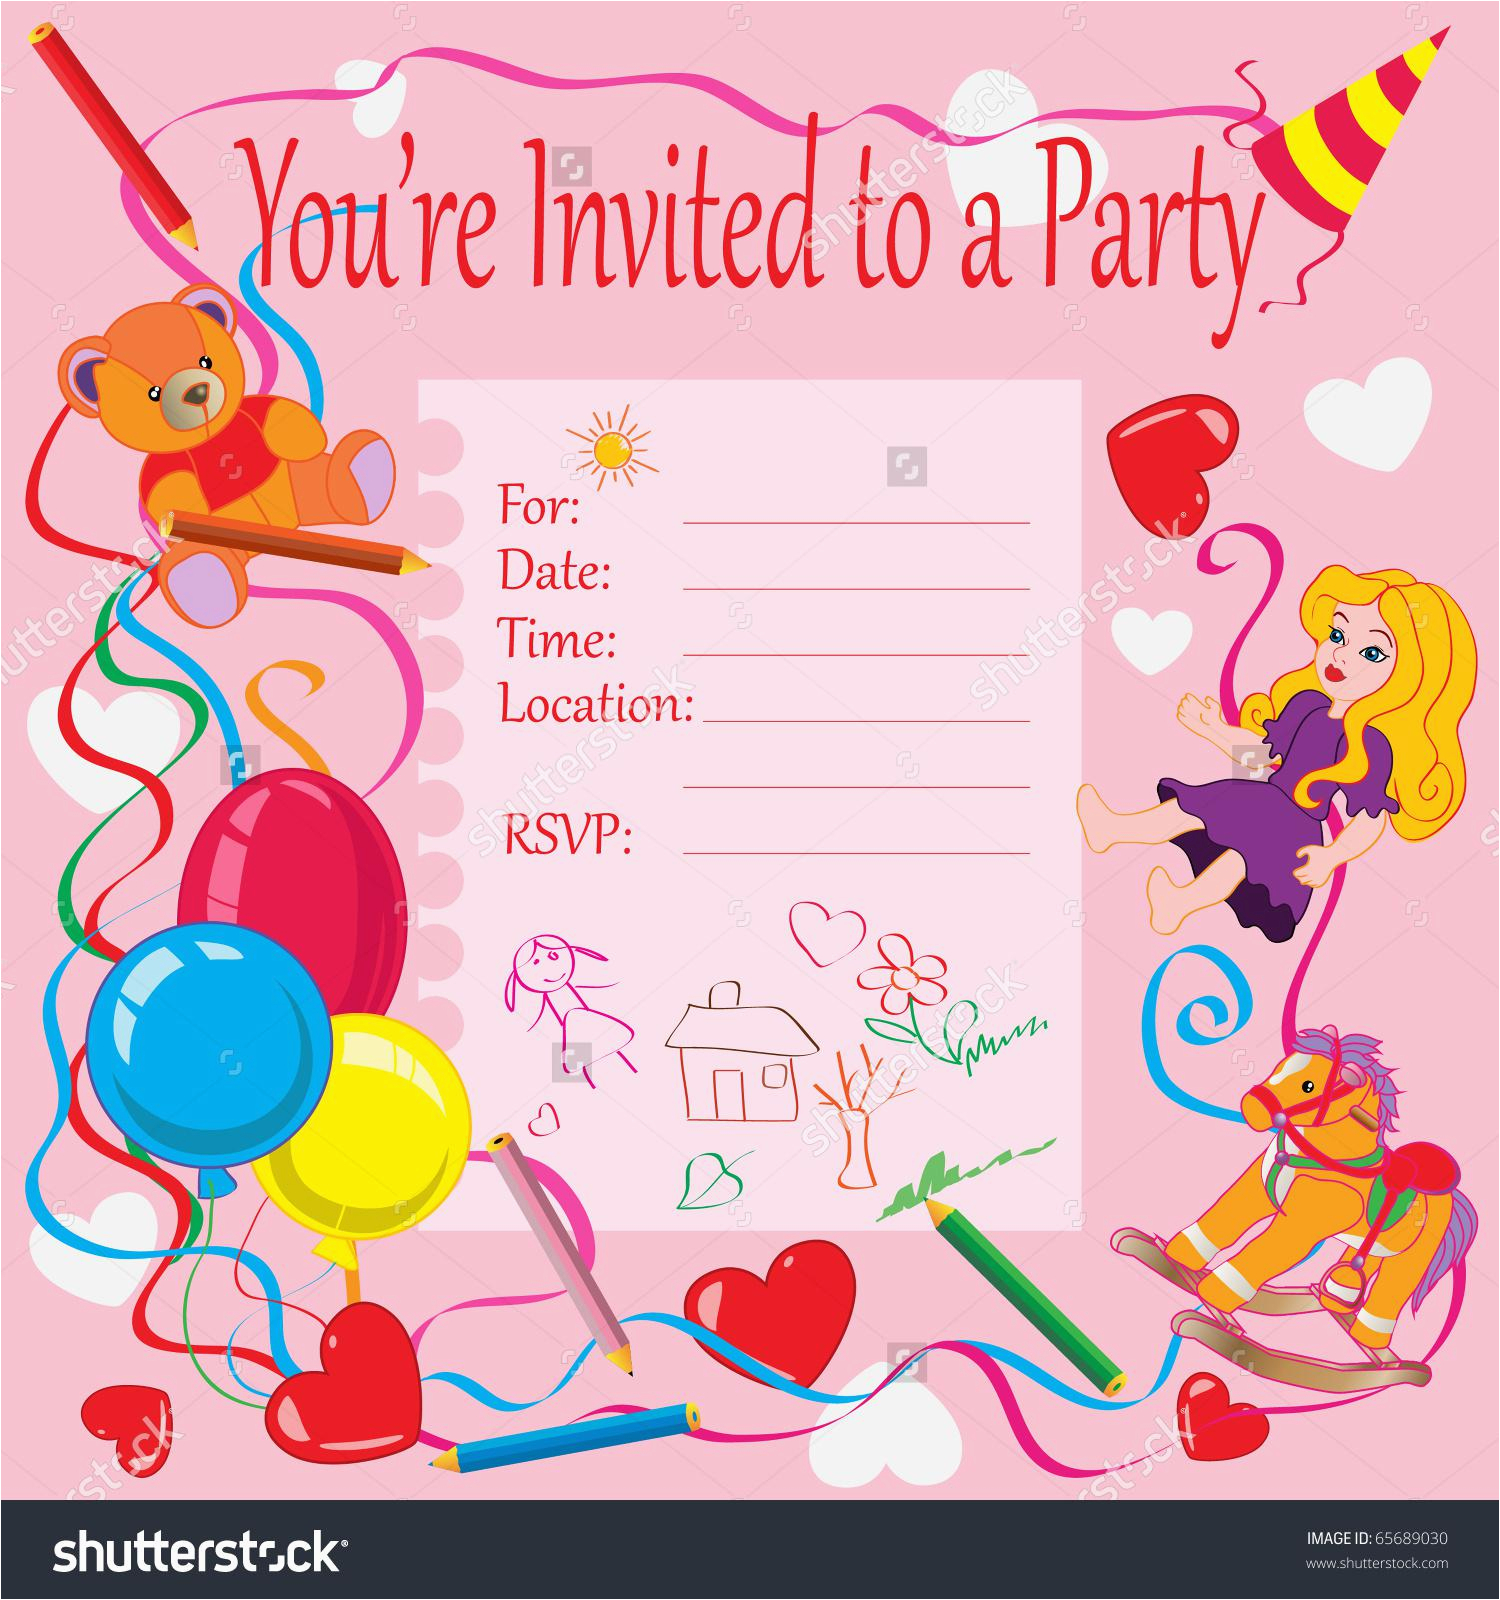 Print Your Own Birthday Invitations Free Make Party Printable